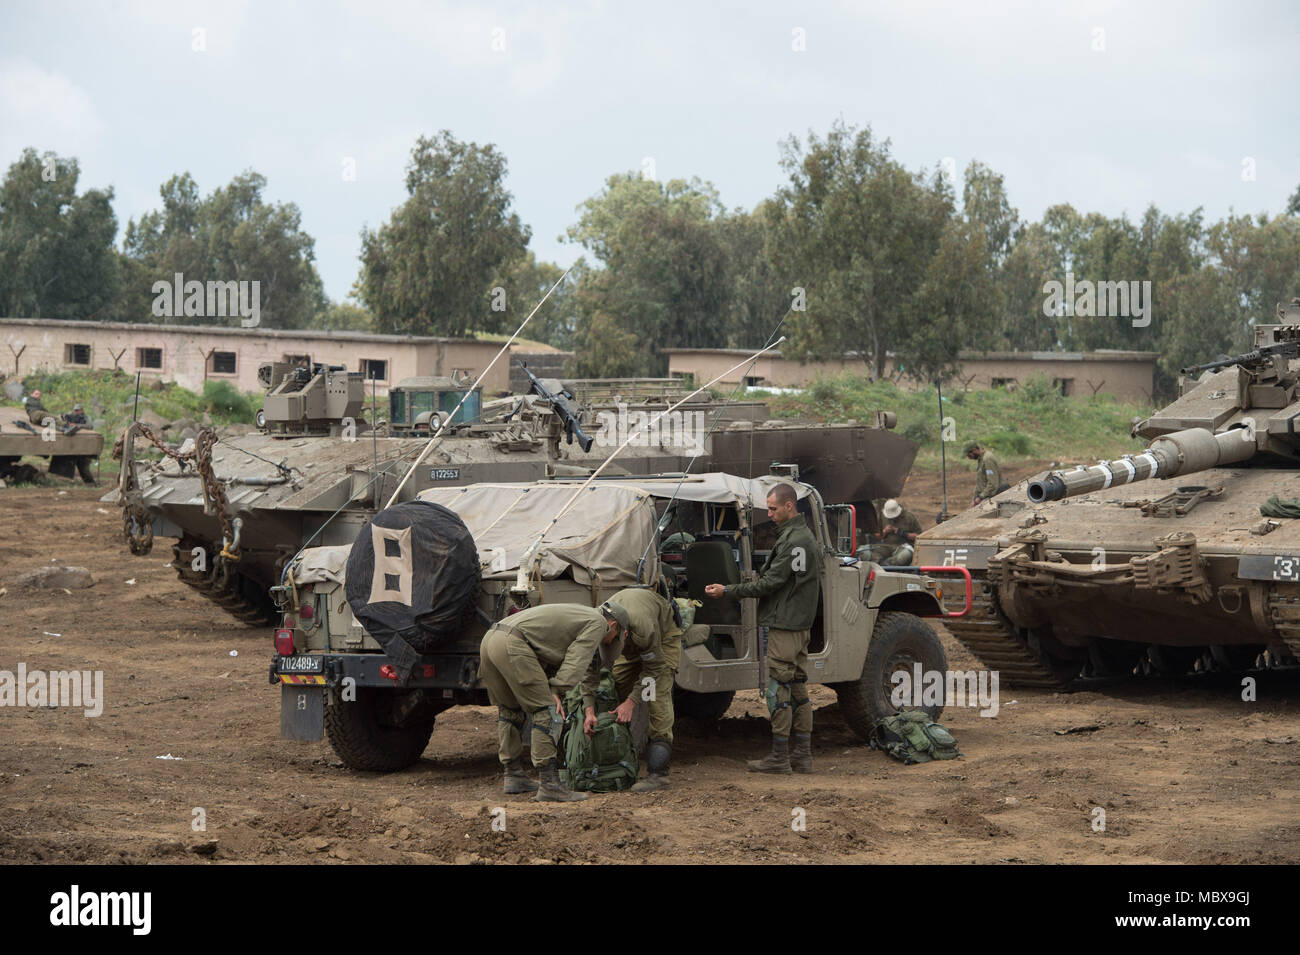 Golan Heights. 11th Apr, 2018. Israeli troops are seen on the Israel-annexed Golan Heights, on April 11, 2018. Israel's military has been put on high alert amid heightened tensions with Syria and Iran. Credit: Gil Eliyahu-JINI/Xinhua/Alamy Live News - Stock Image